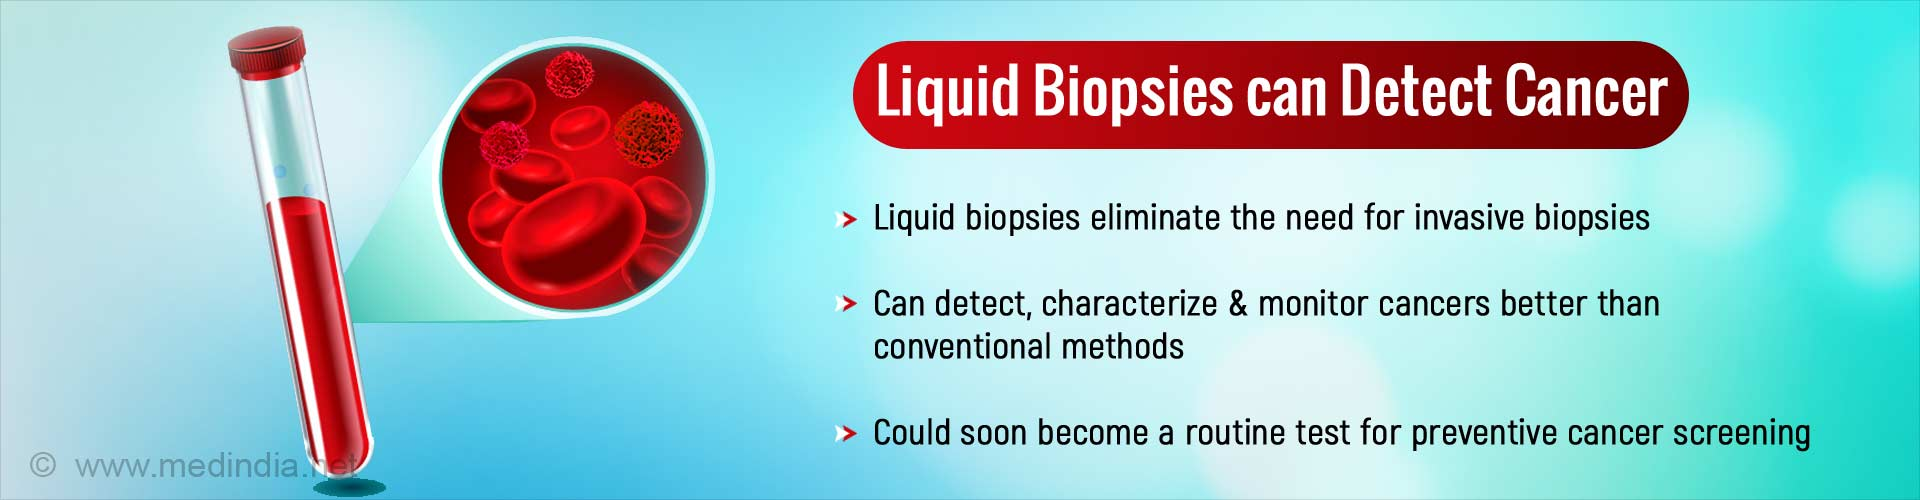 Liquid Biopsies Enable Better Outcomes for Cancers